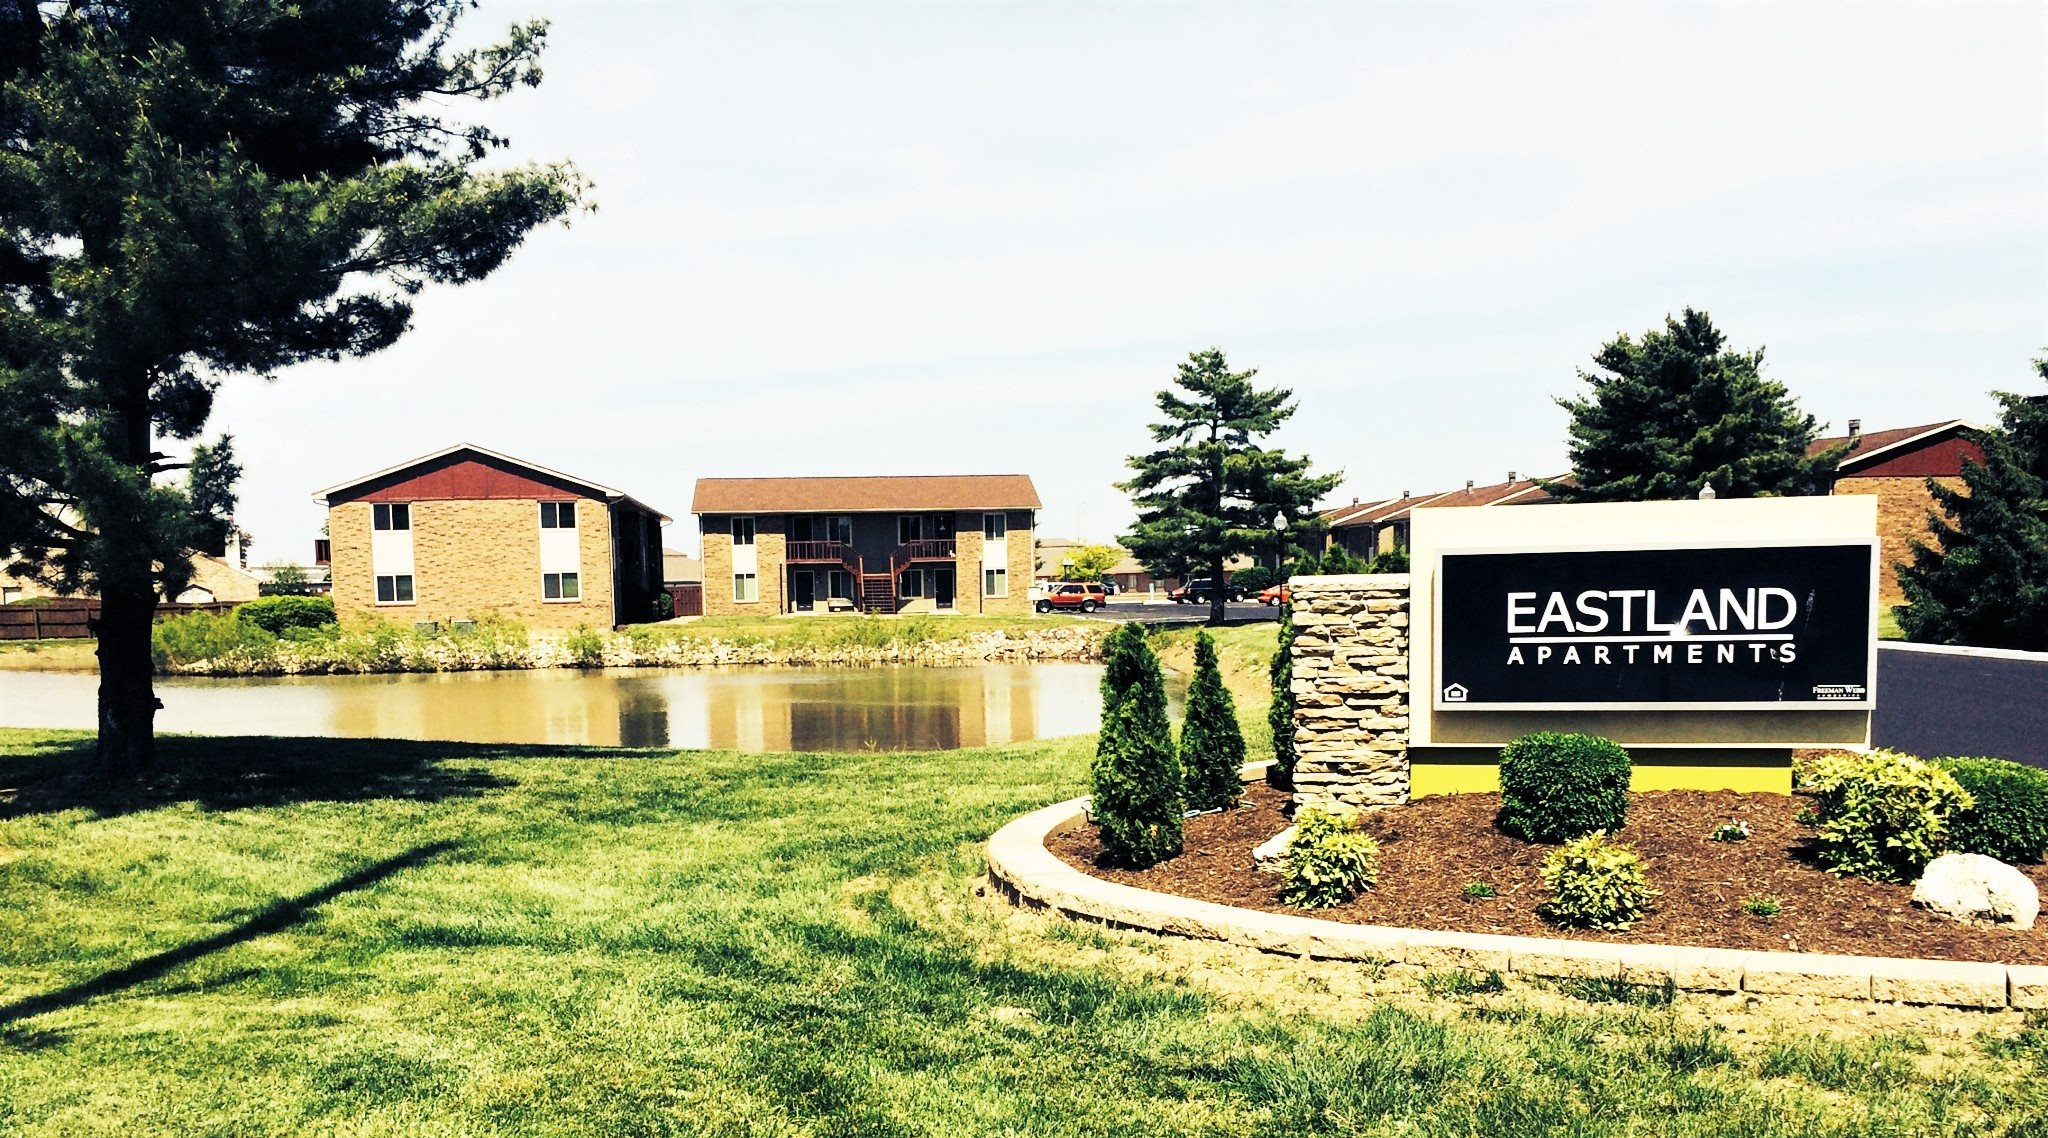 Eastland Apartments Apartments In Evansville In